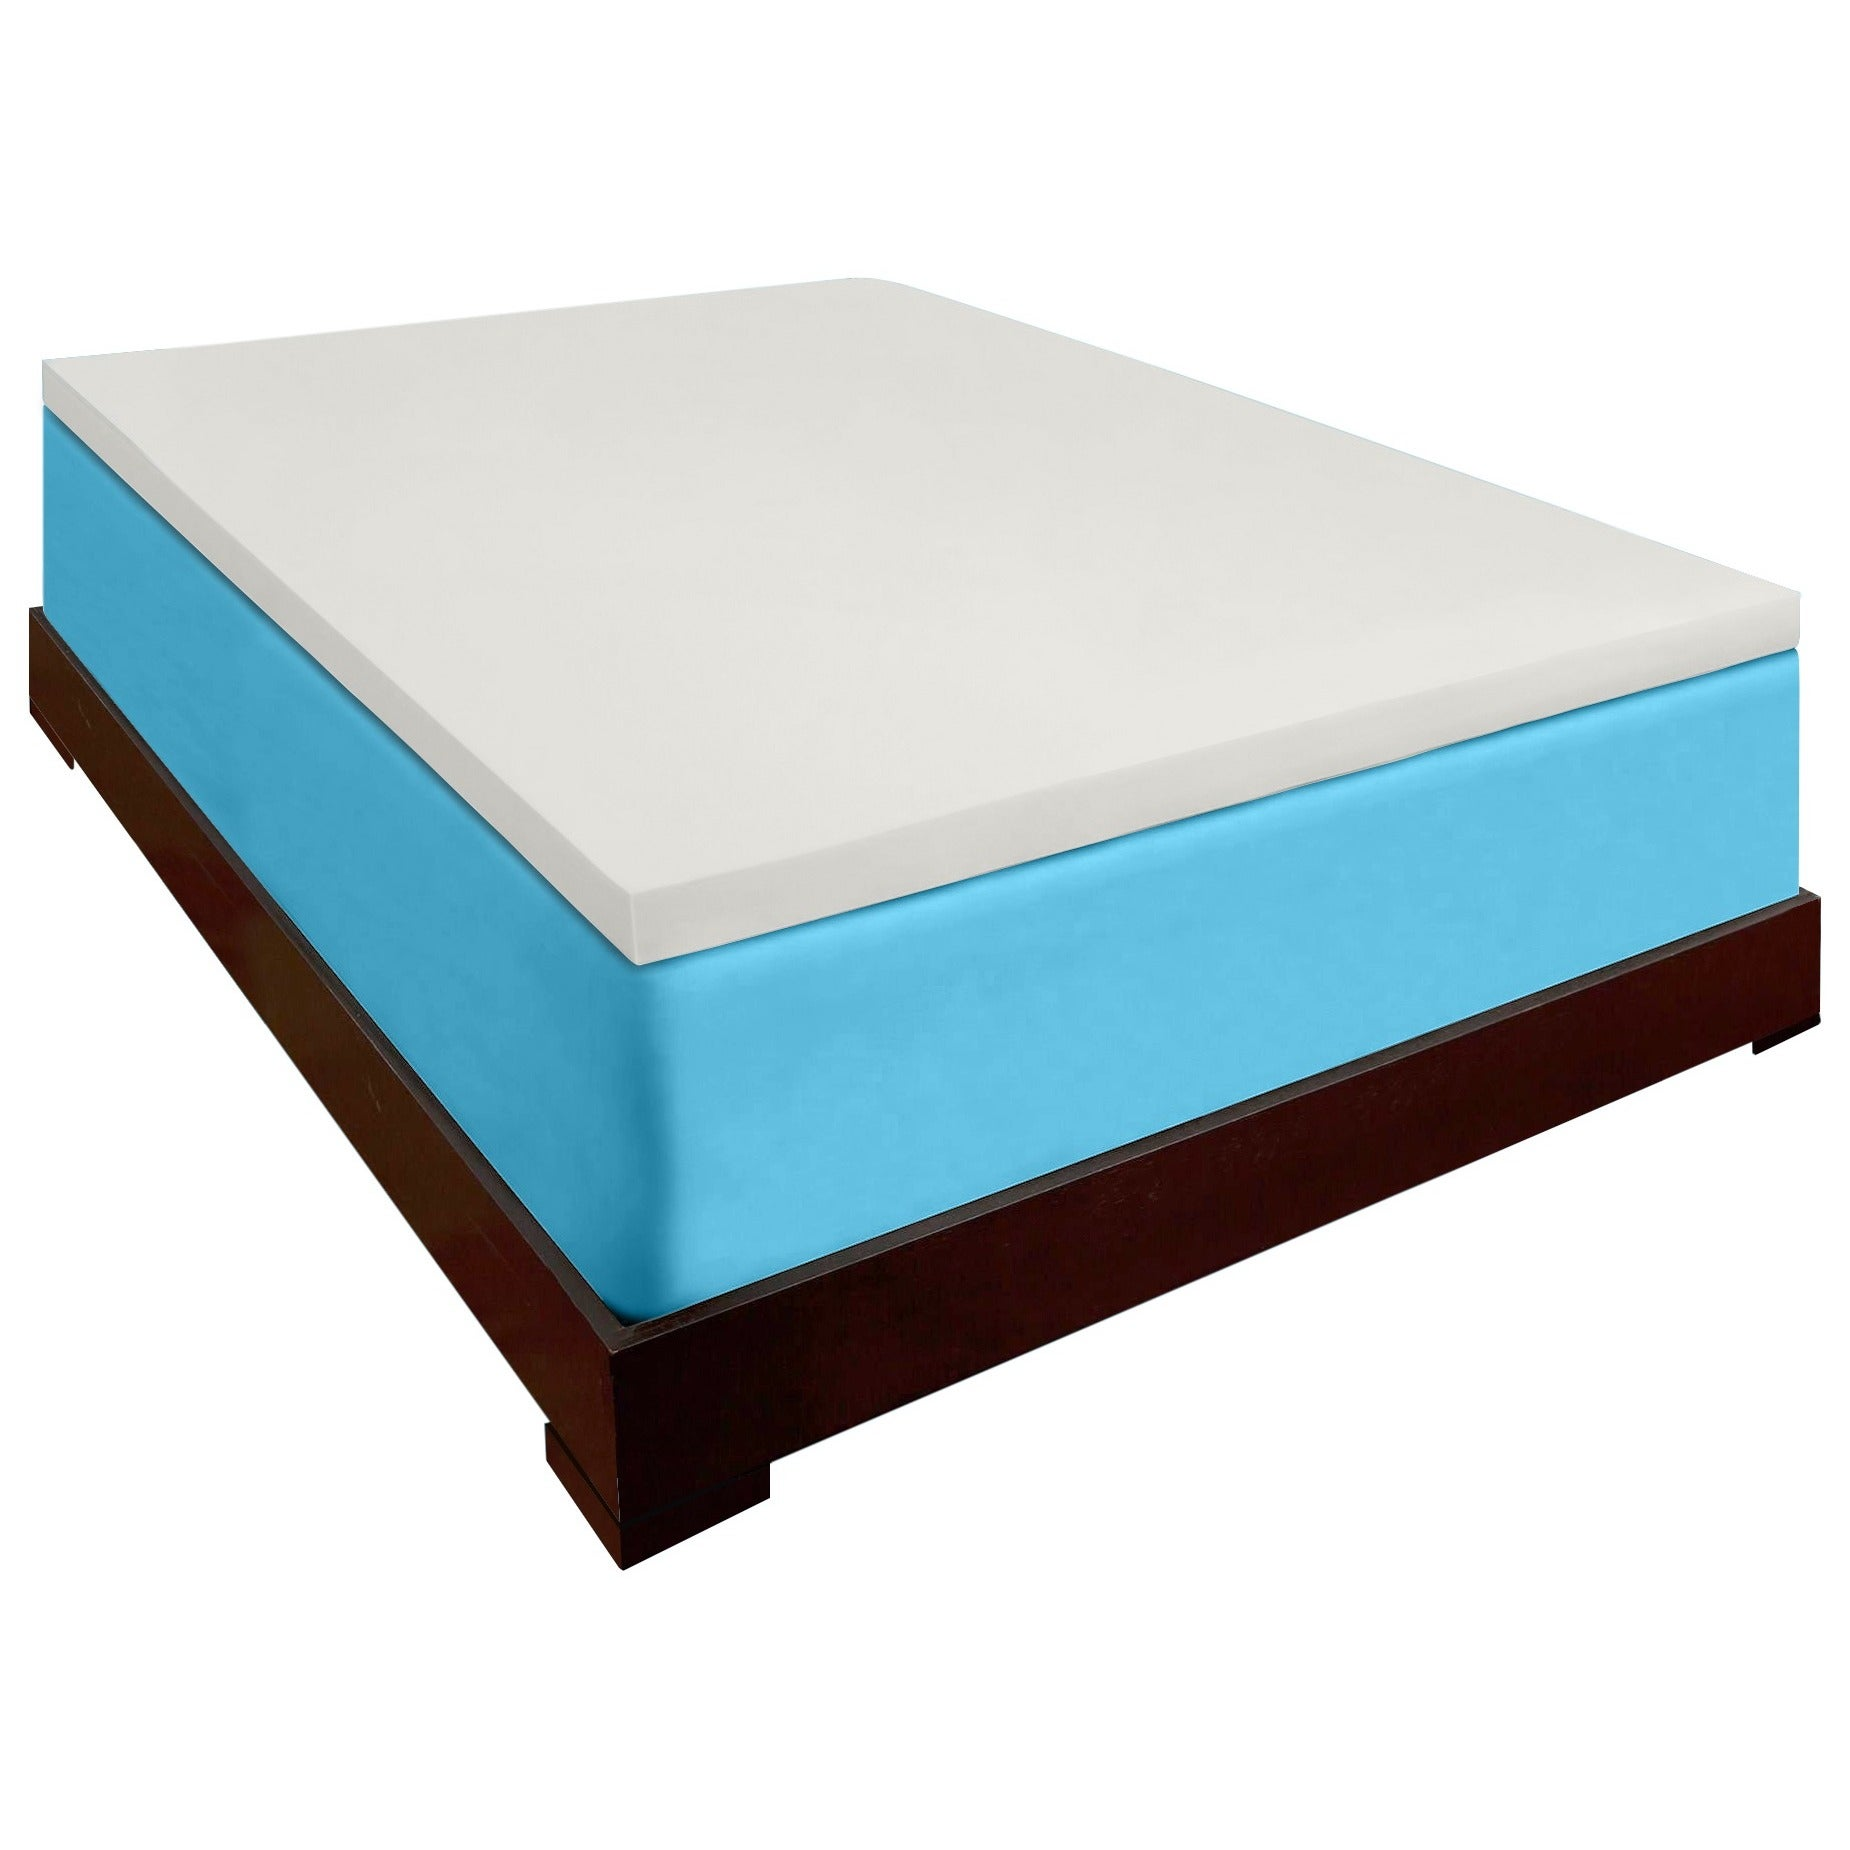 Memory Foam Mattress Topper.Dreamdna 2 Inch 4 Pound Density Memory Foam Mattress Topper